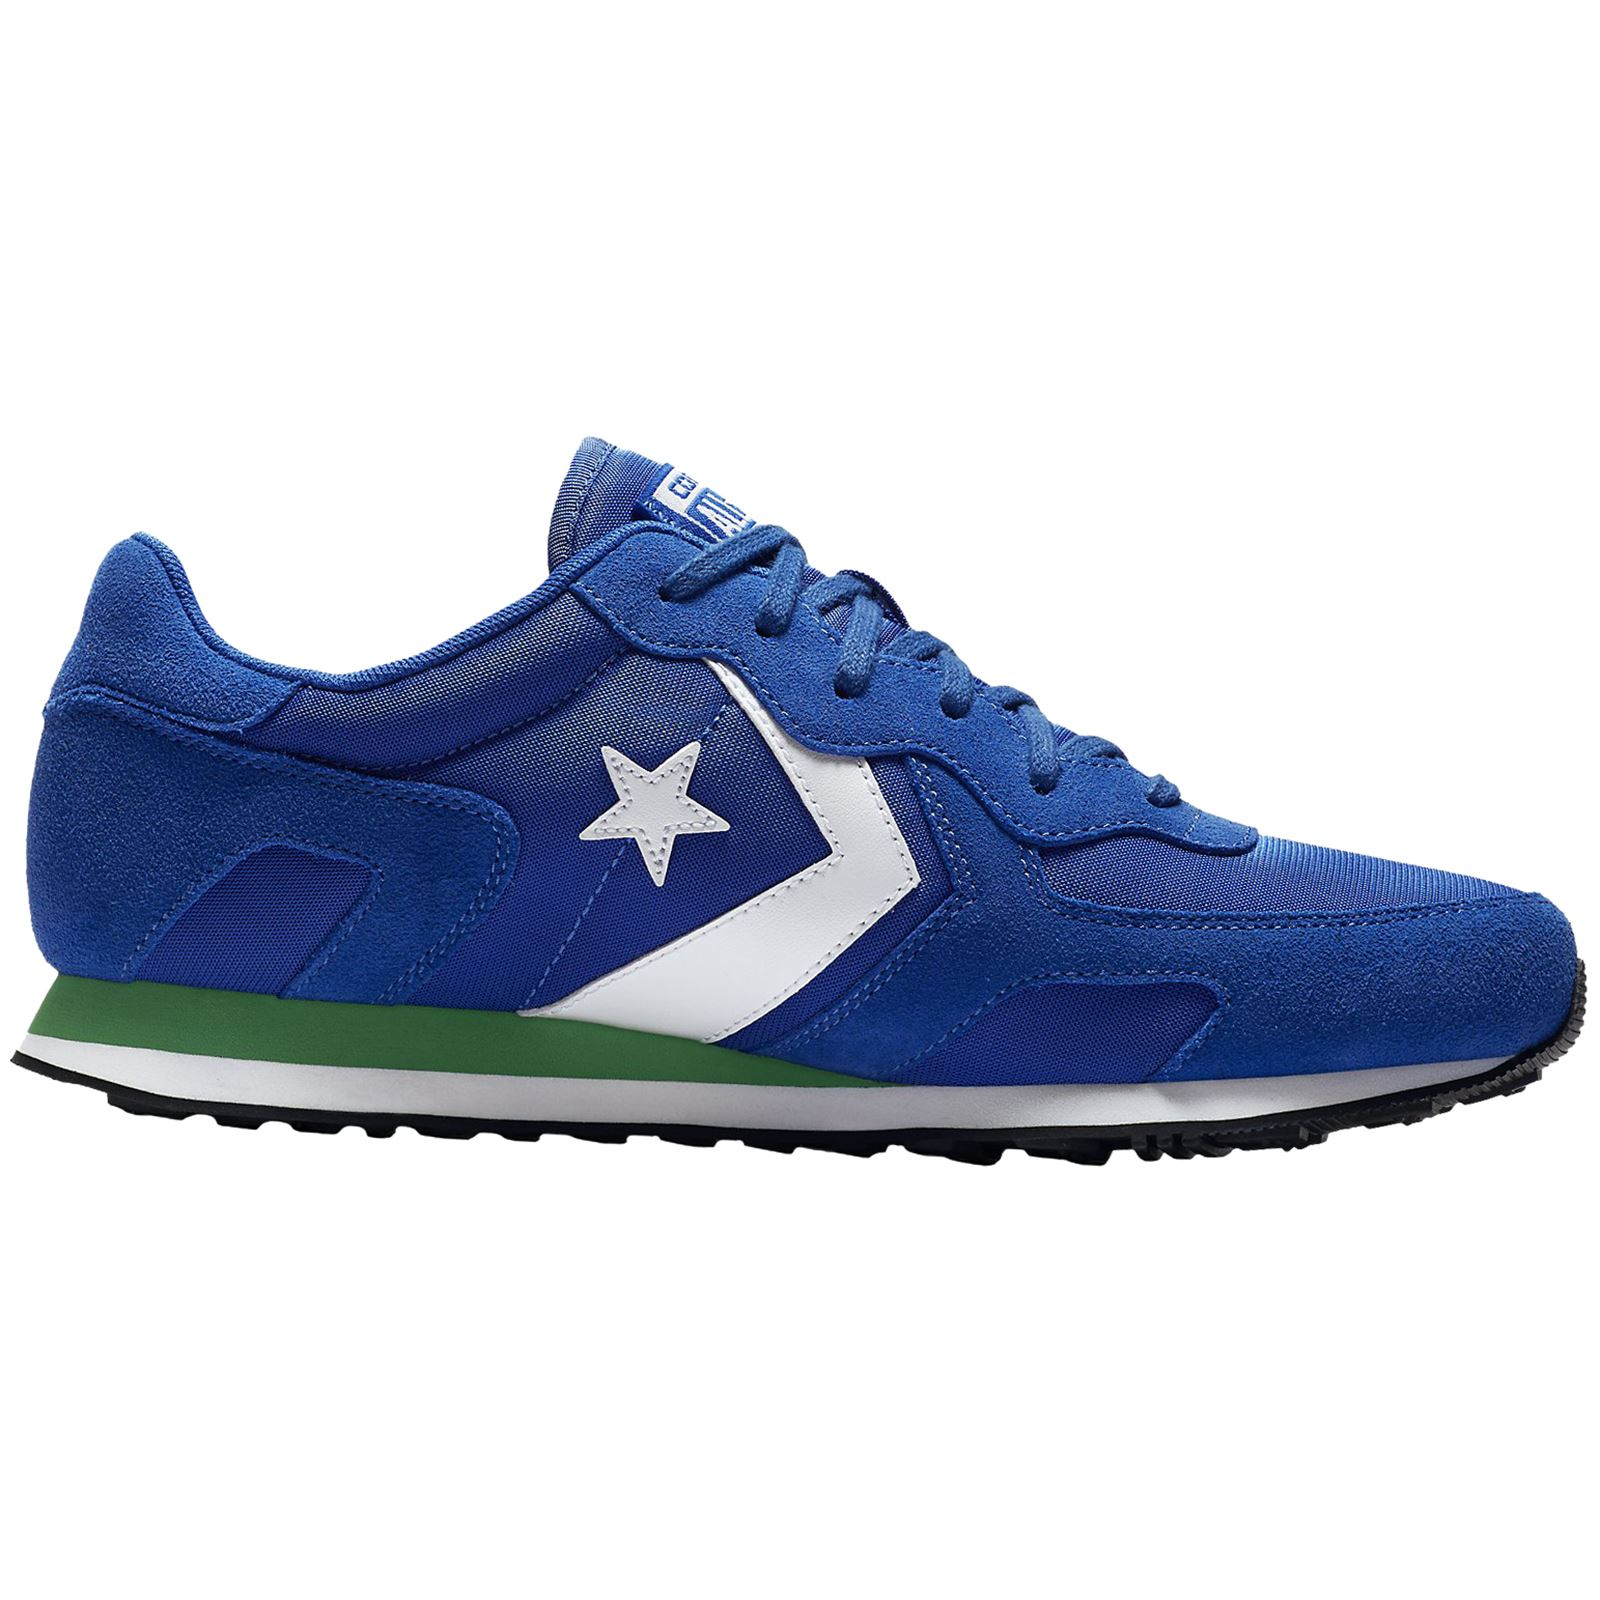 1544f1aa70b Converse Thunderbolt Ox Hyper Royal Green Womens Suede Mesh Low-top Trainers